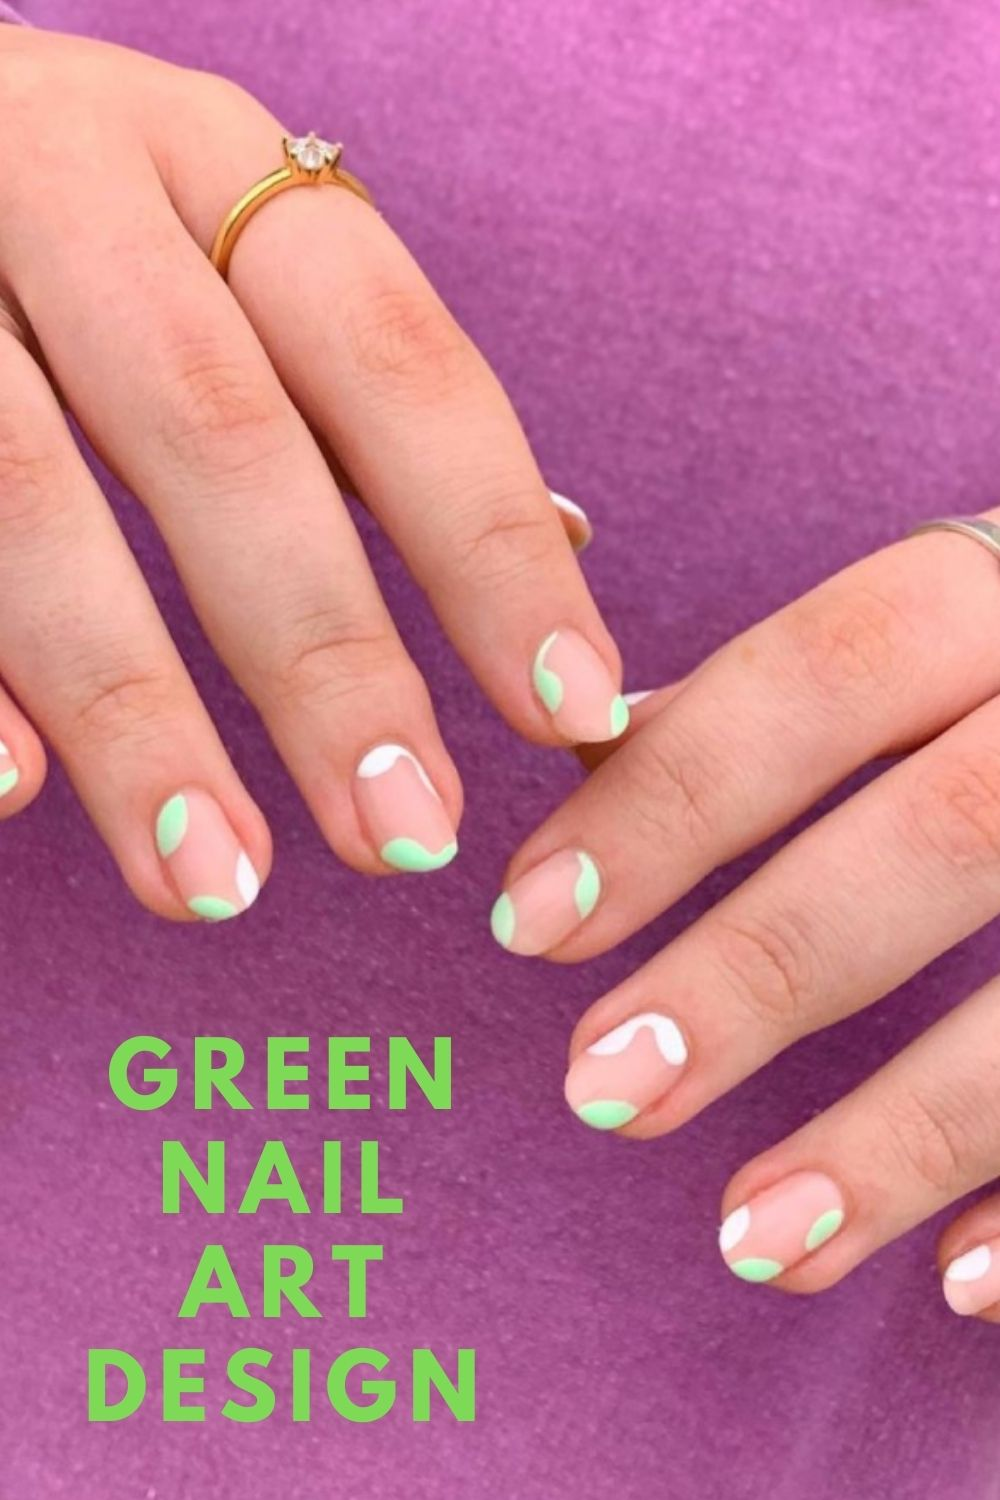 Neon green and white short nails